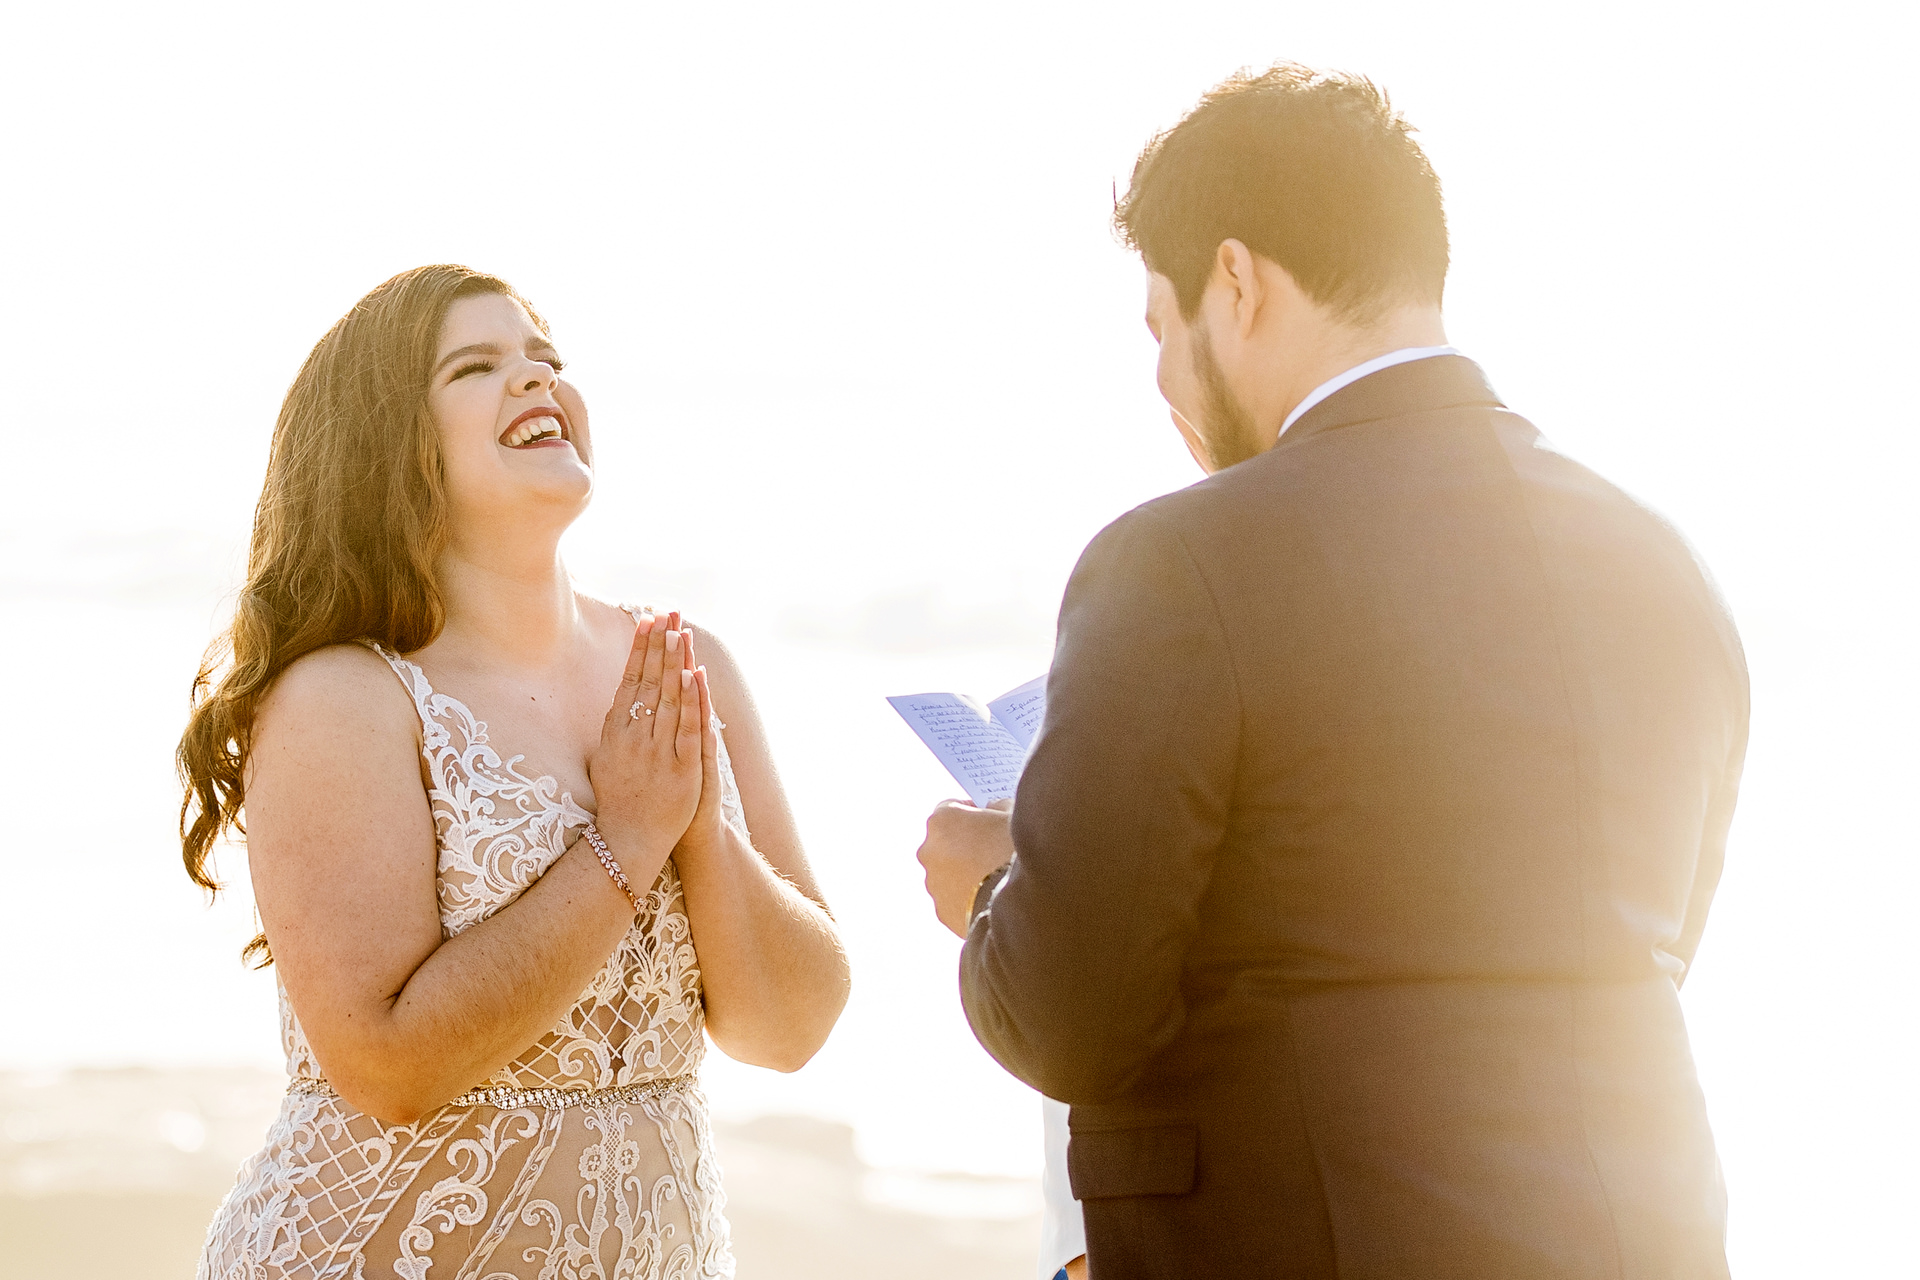 Beautiful Wedding Photography at Sunset Cliffs - San Diego, CA | The bride reacts with joy and laughter to grooms vows